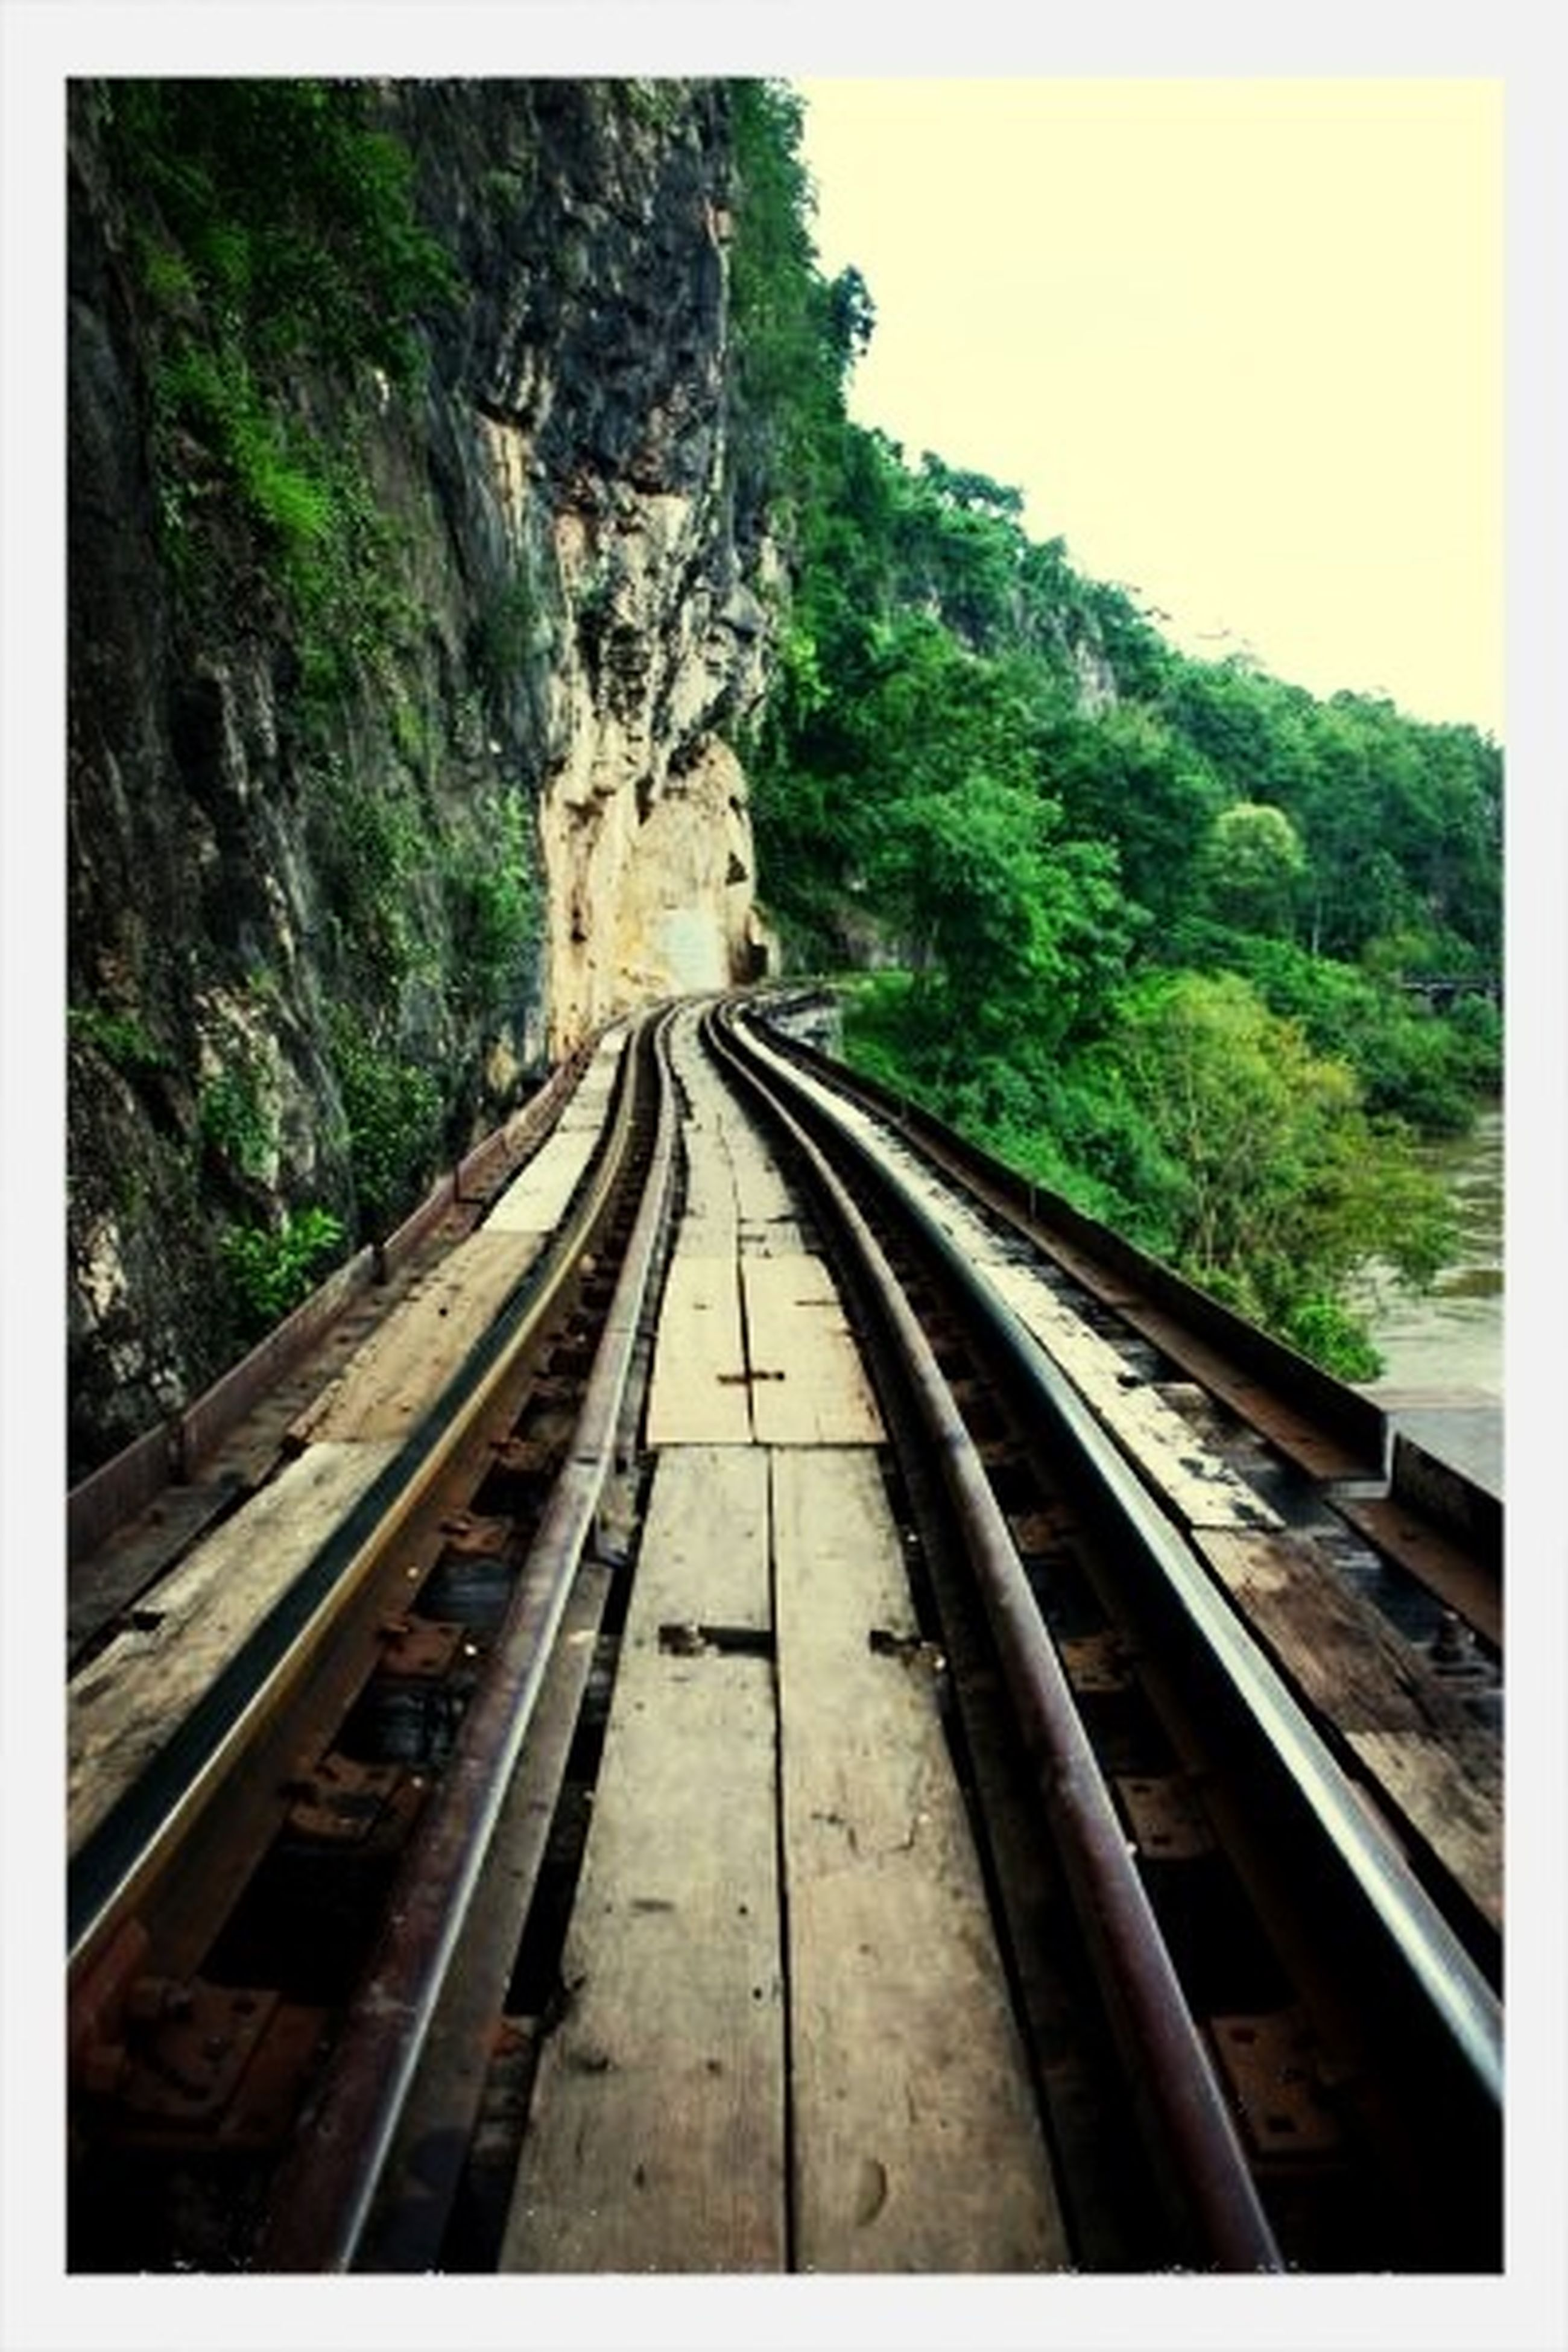 railroad track, rail transportation, transportation, tree, public transportation, the way forward, diminishing perspective, railway track, vanishing point, connection, travel, transfer print, day, auto post production filter, high angle view, no people, outdoors, train, sky, nature